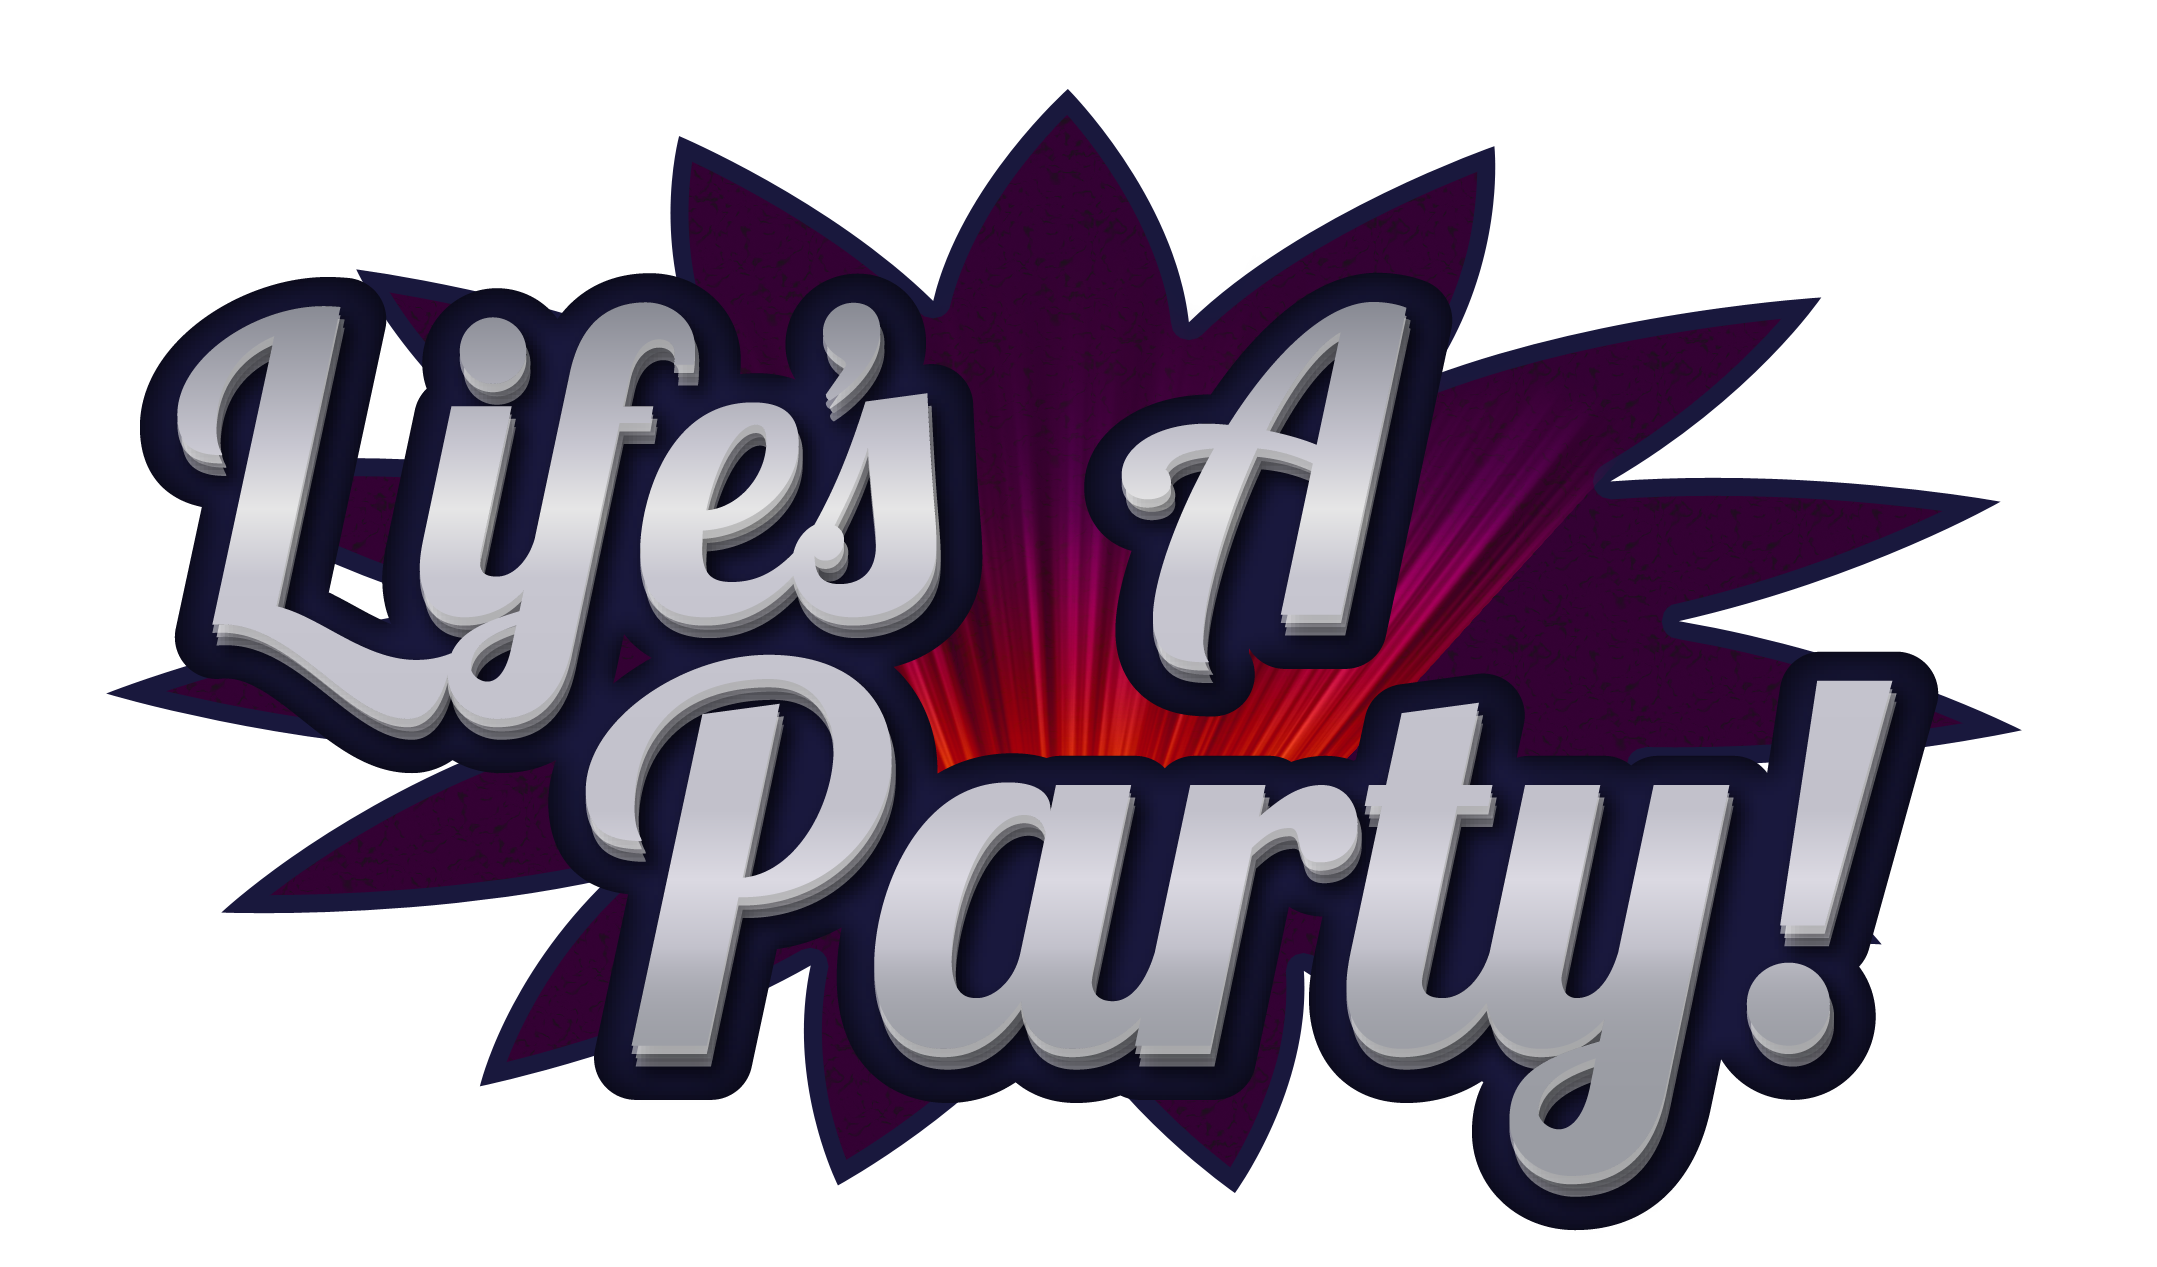 Karaoke party png. Parties high quality image